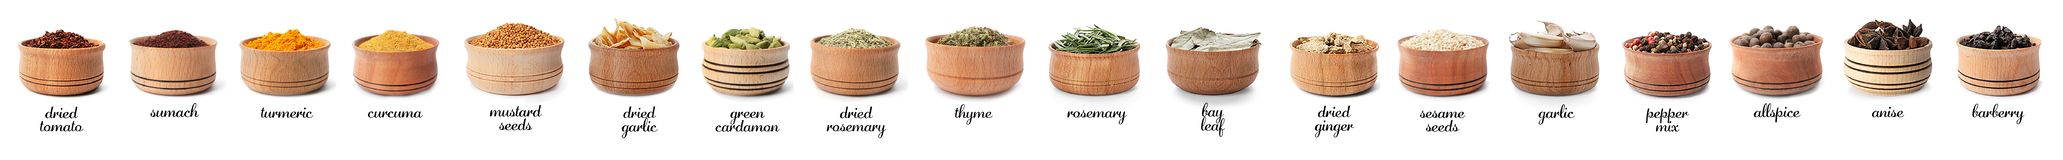 Wooden bowls with different spices and herbs on white background. Large collection with names stock images